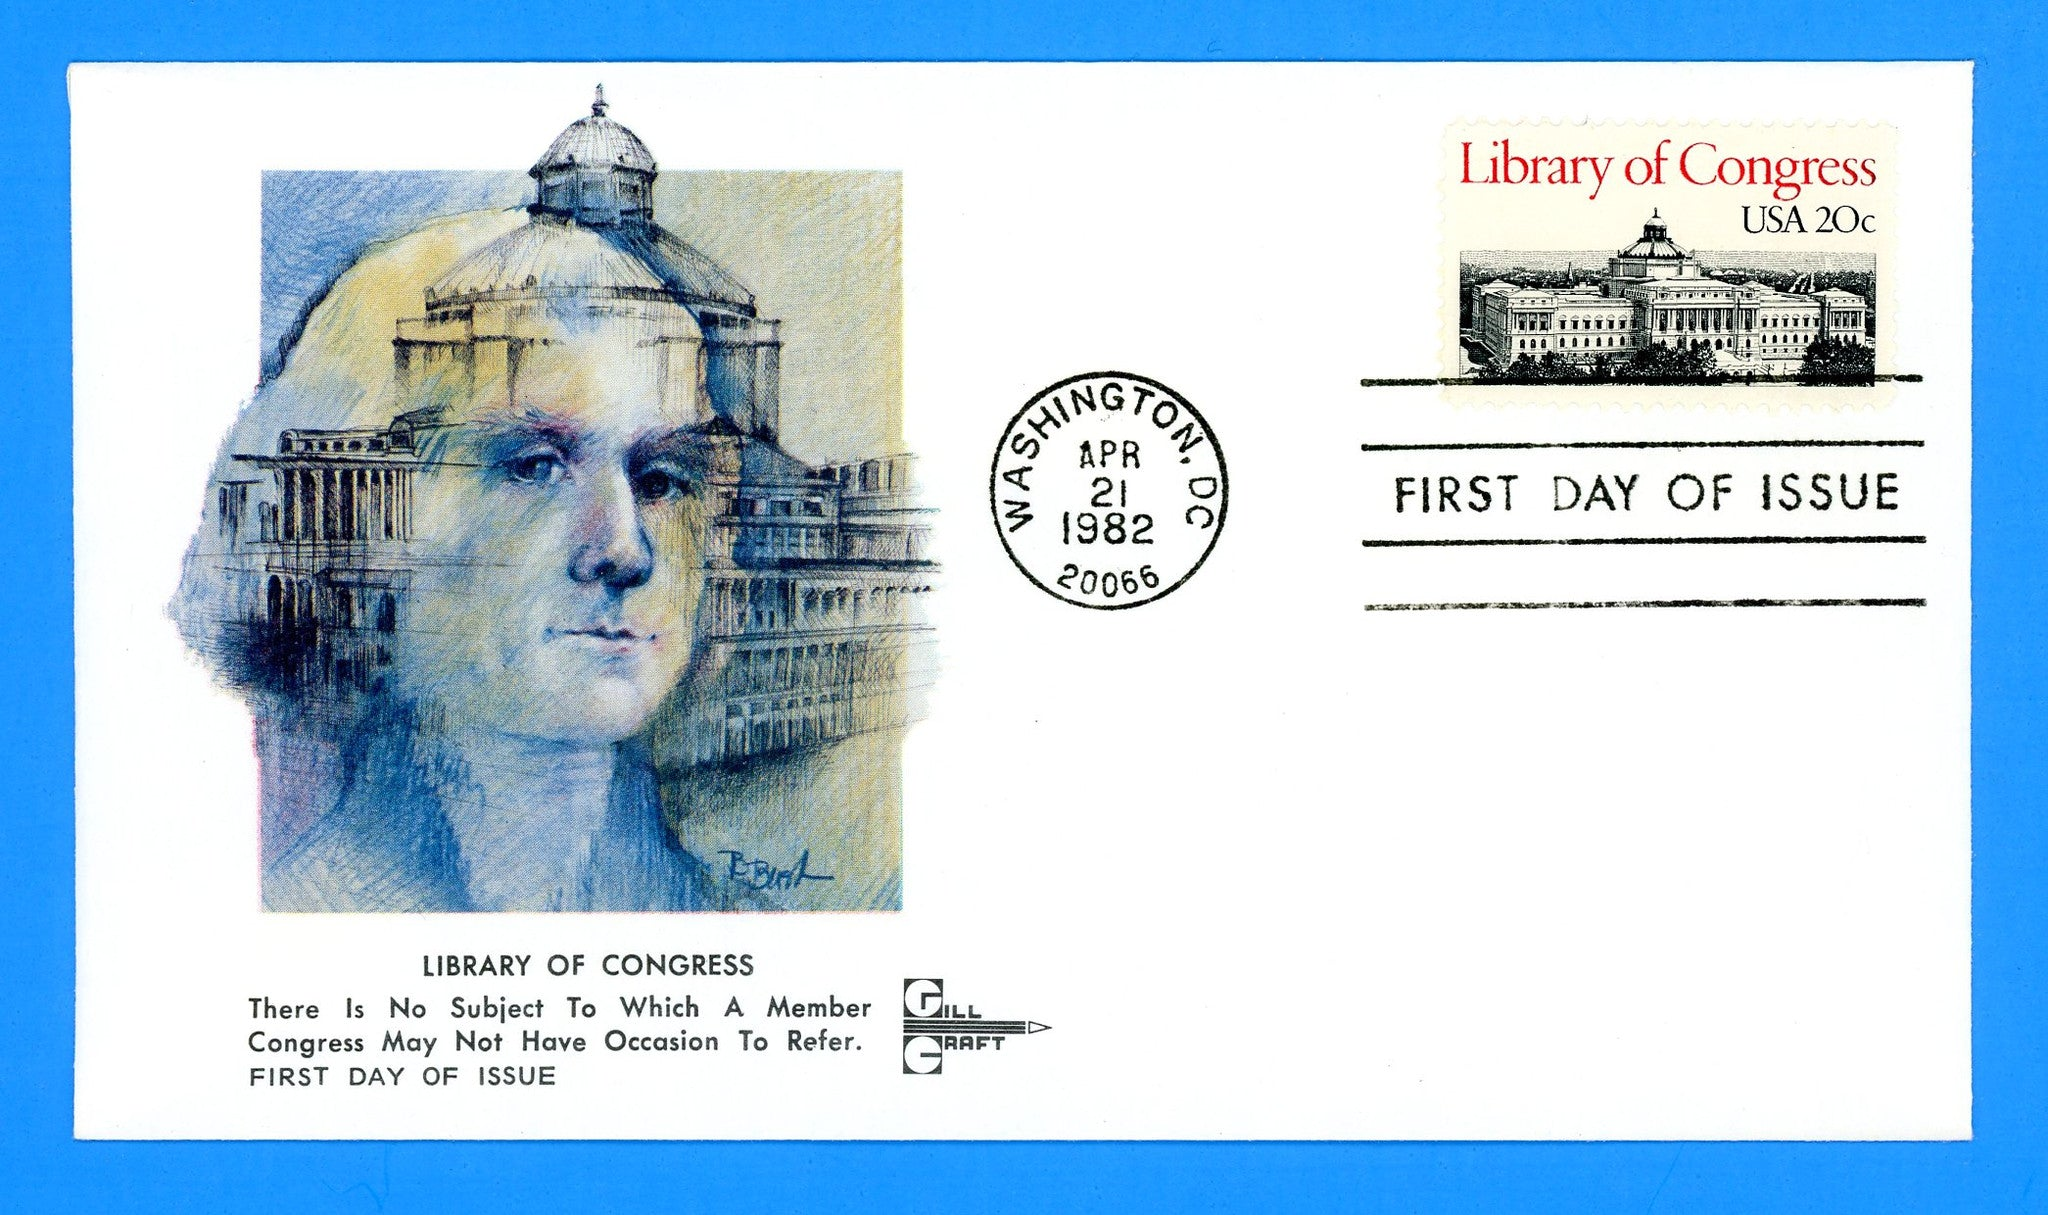 Library of Congress First Day Cover by Gill Craft